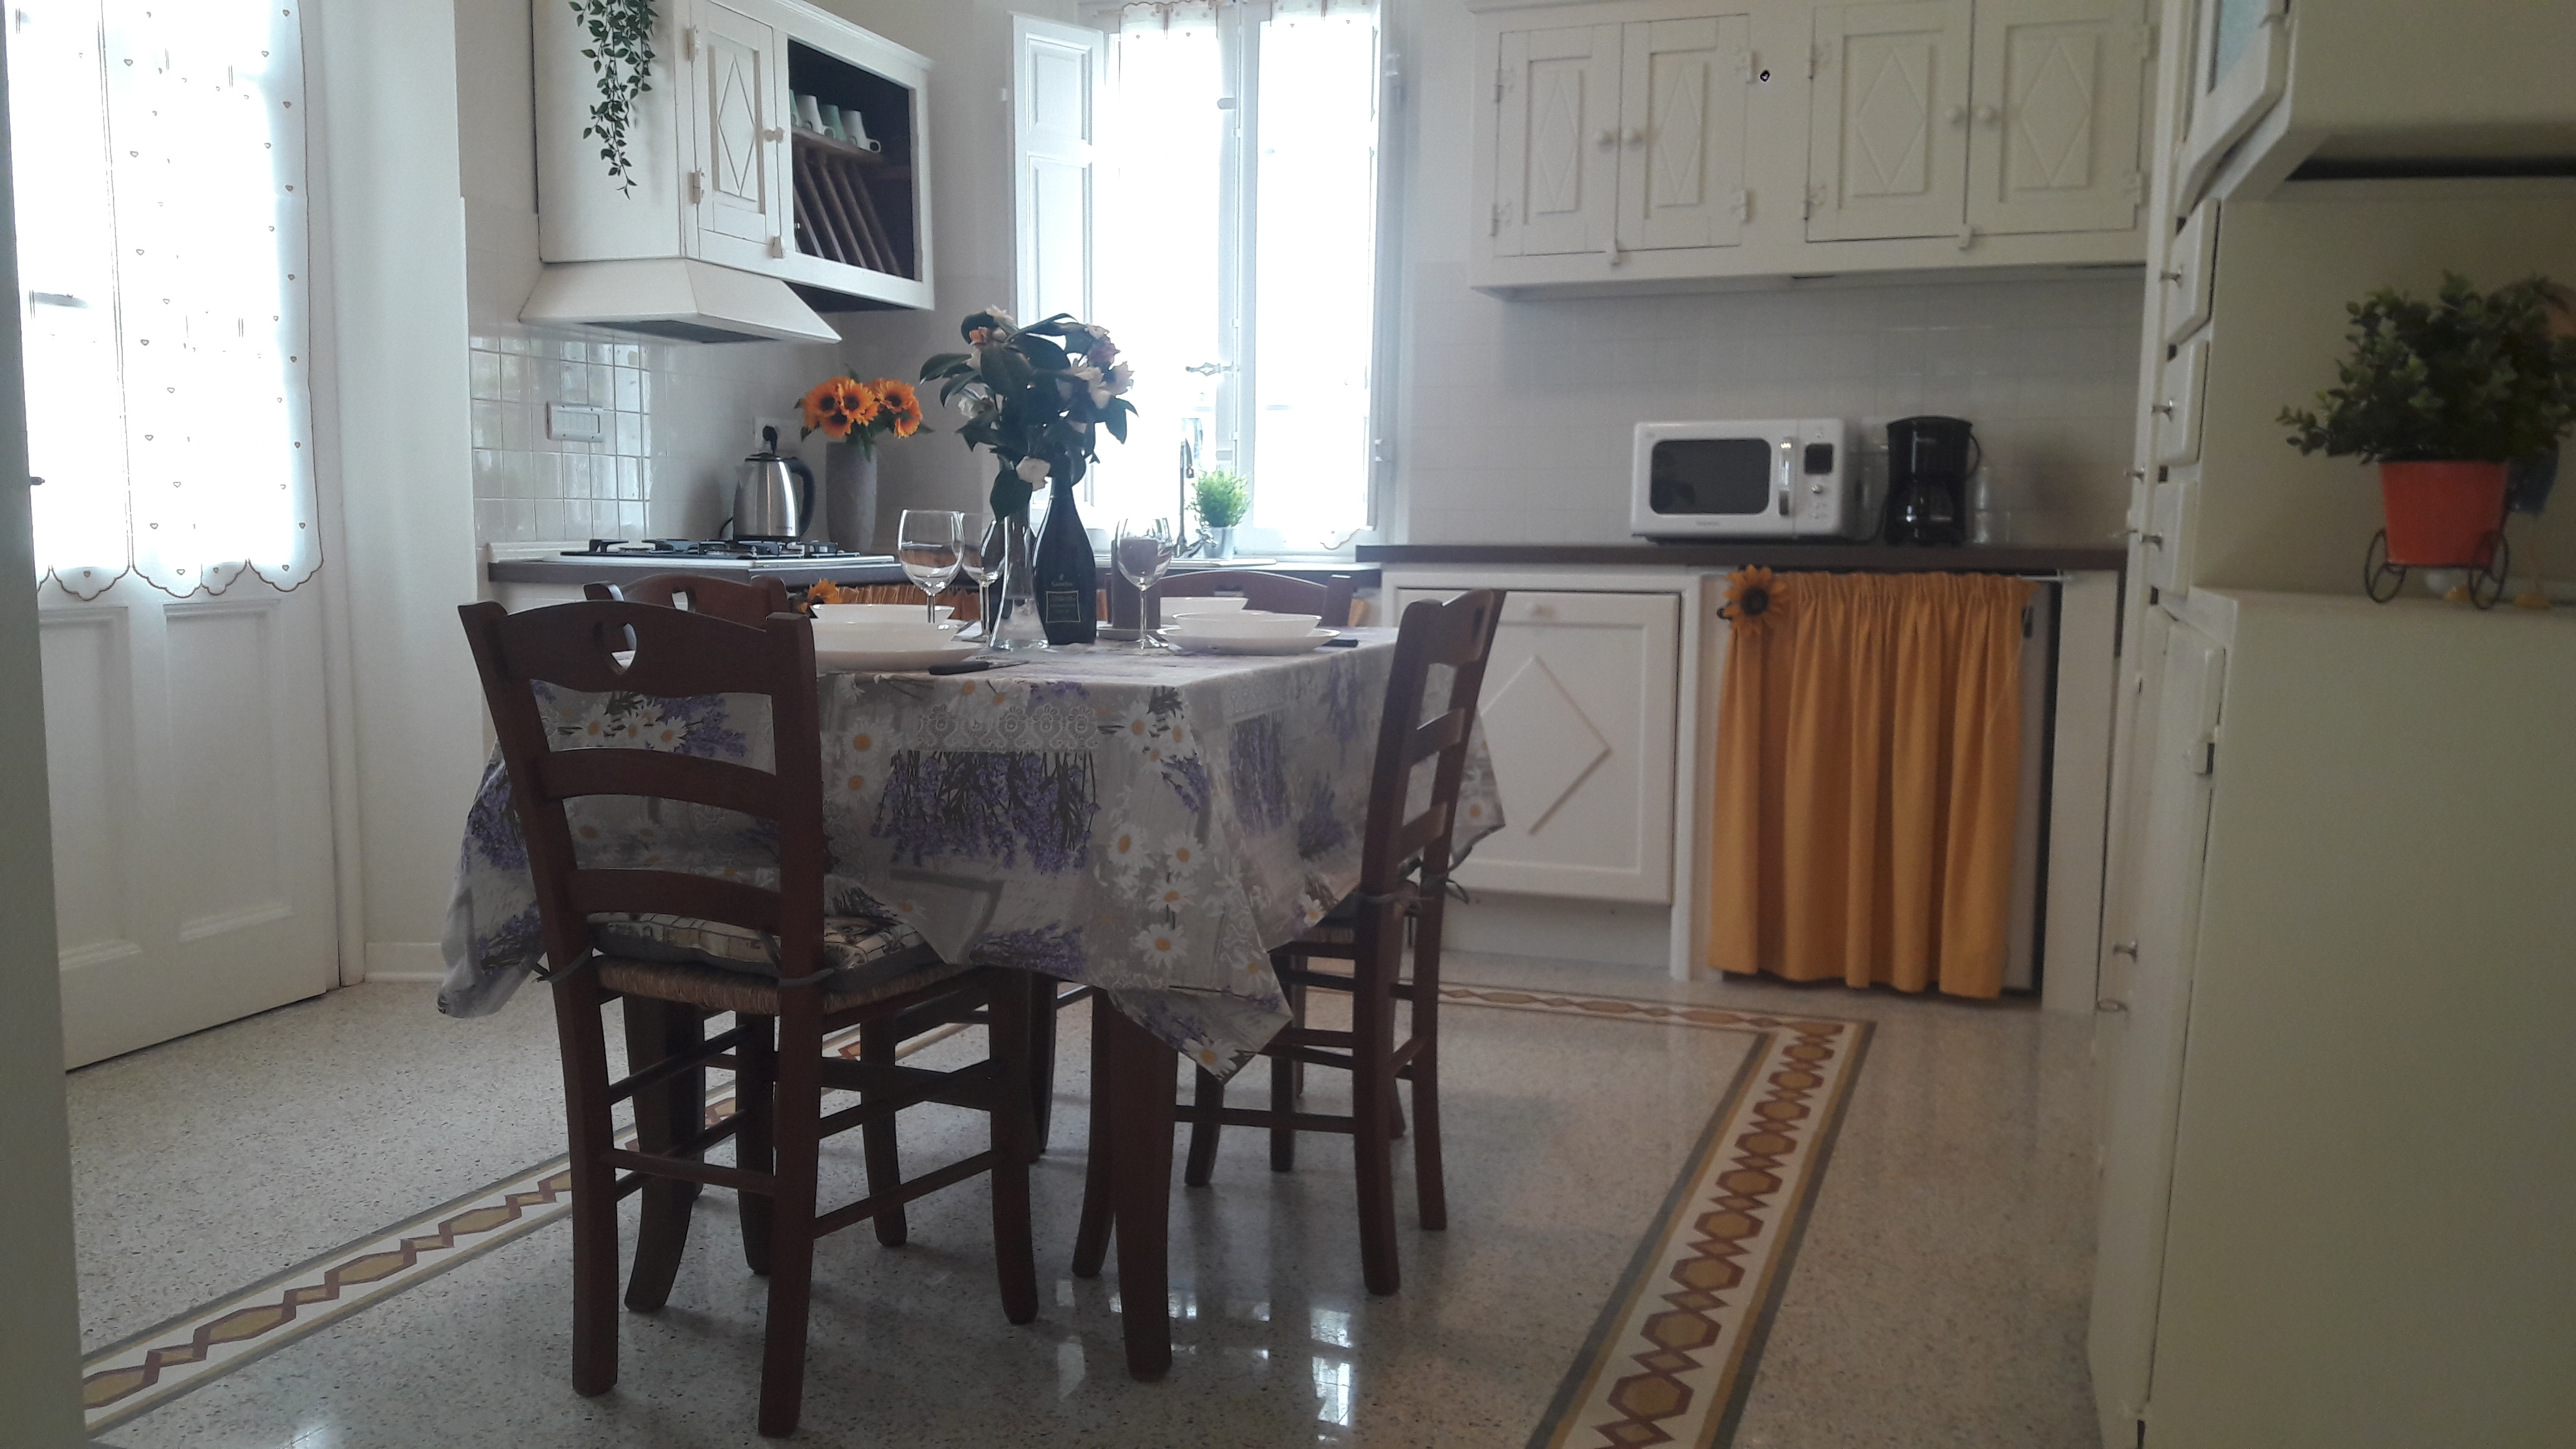 Ama Cucine Firenze villa tommaso e giulia (ozone sanitized) - villas for rent